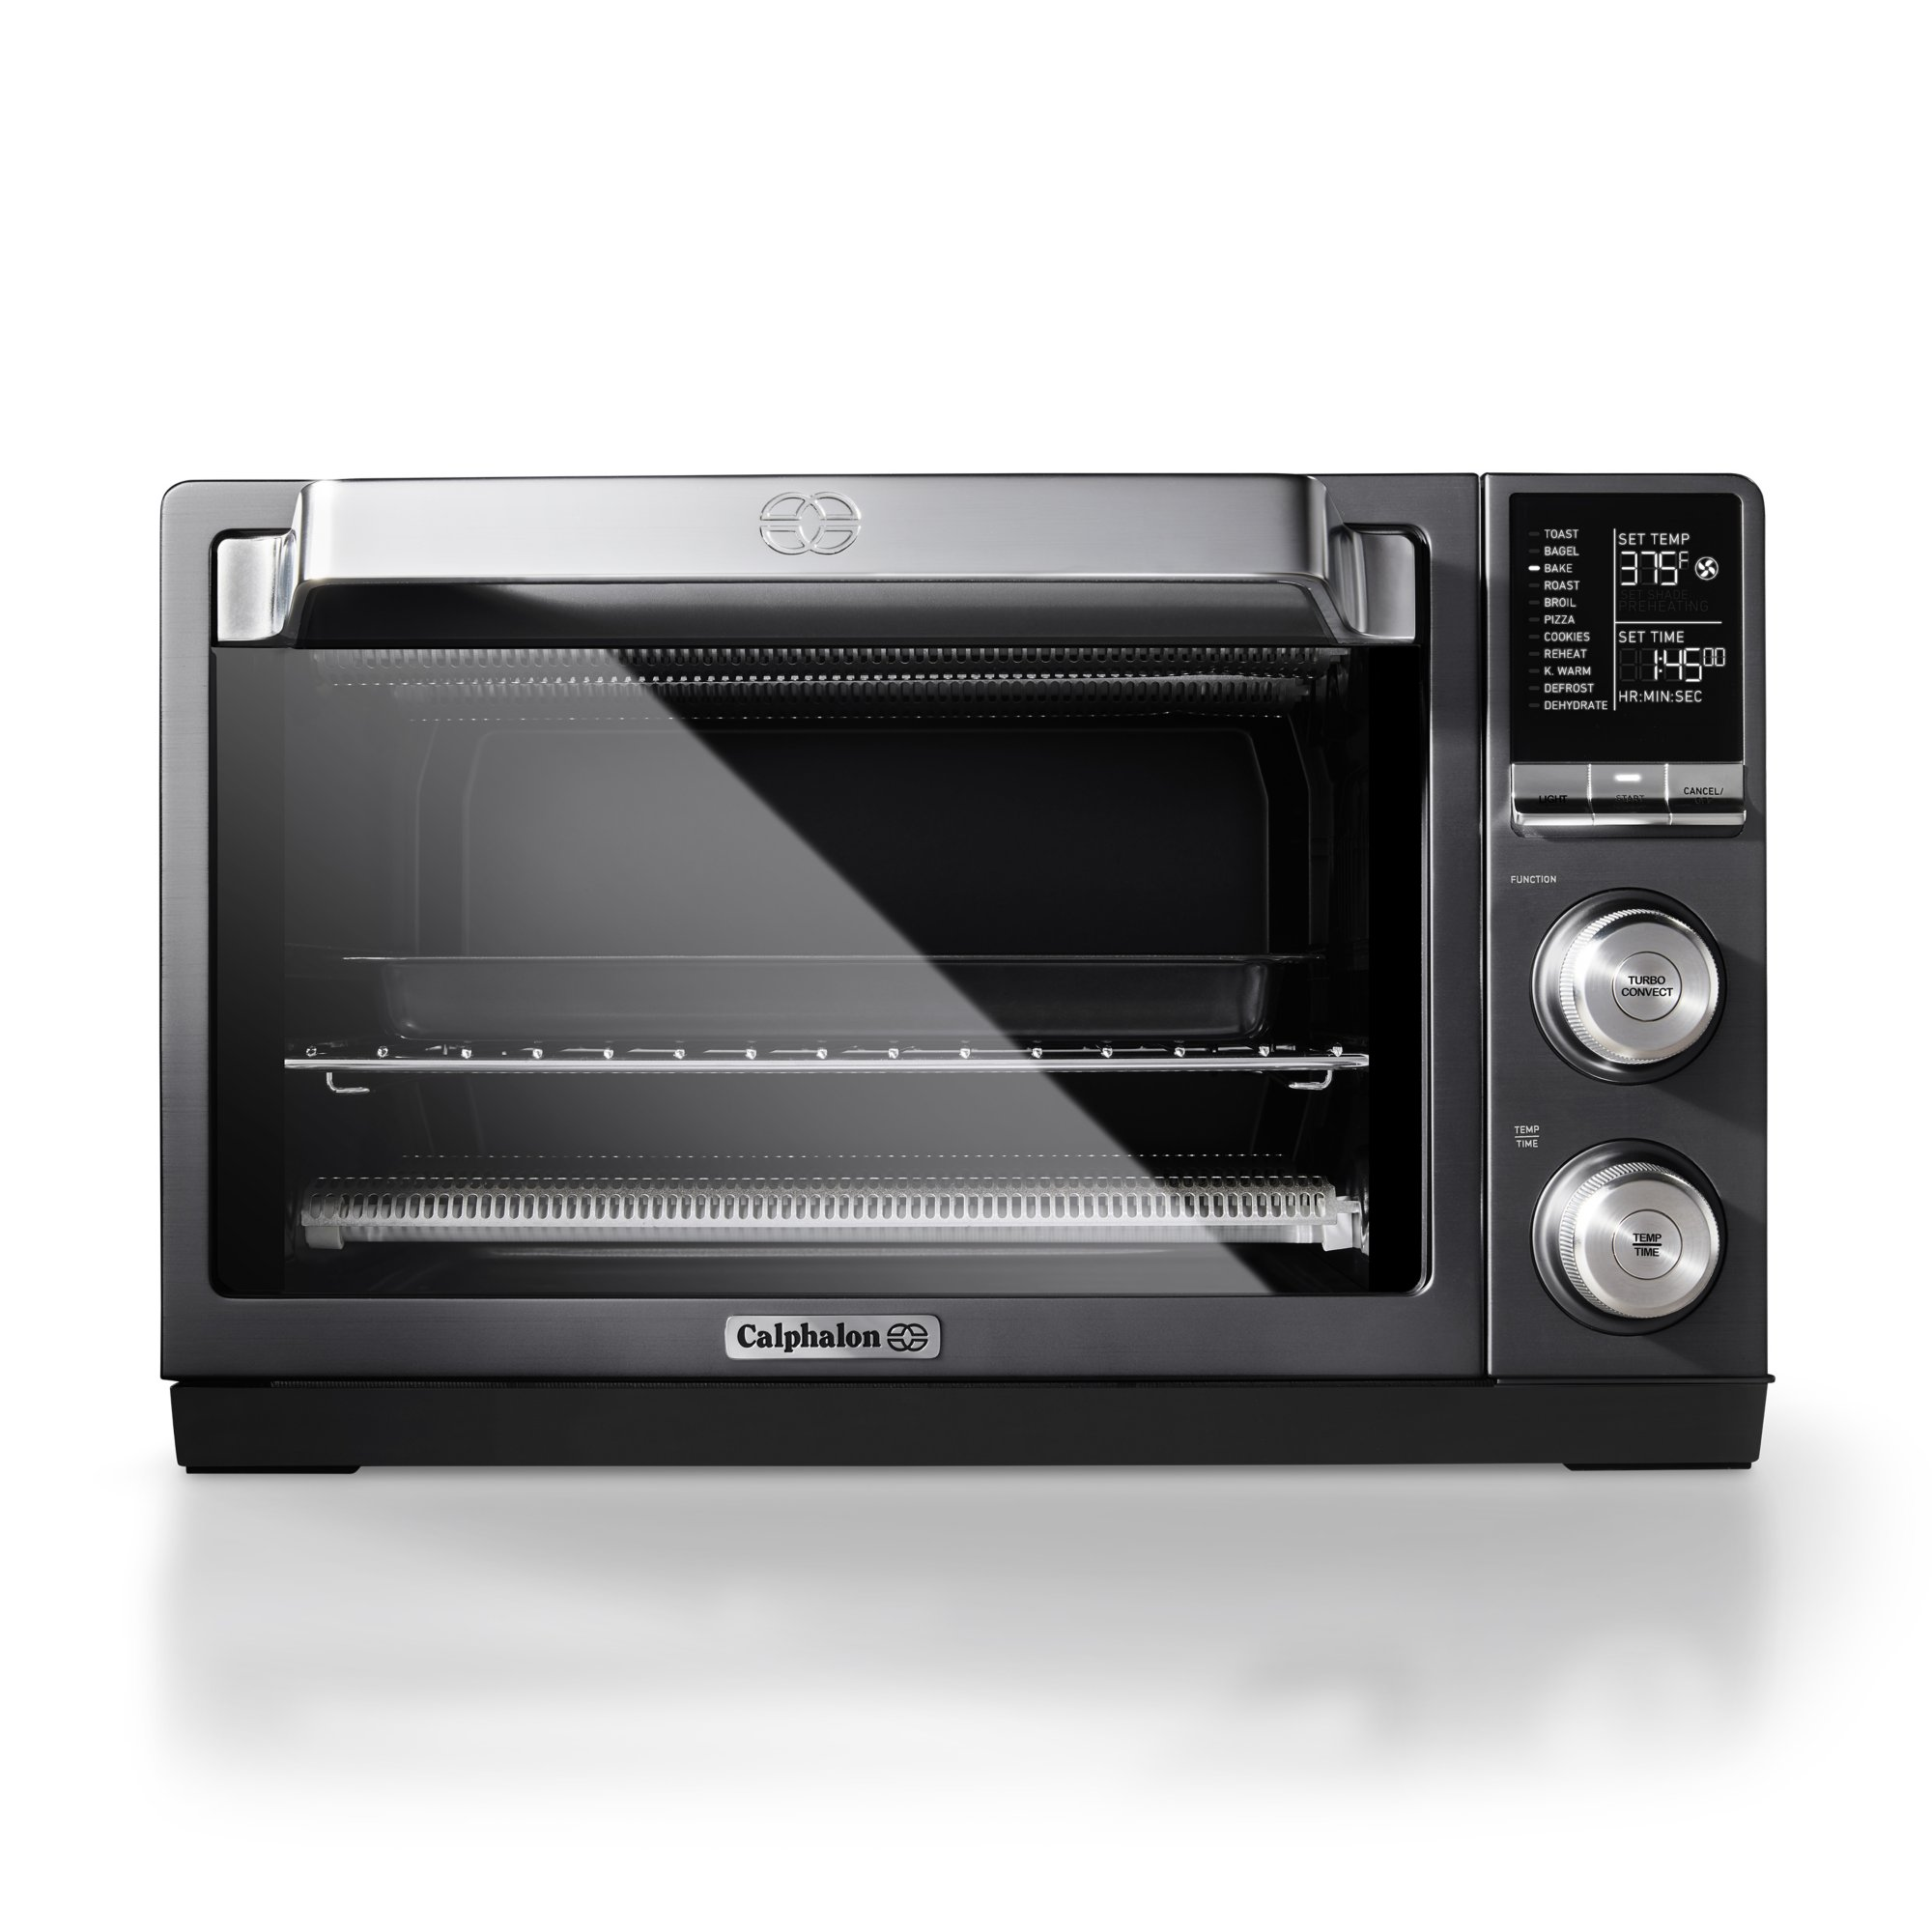 Calphalon Quartz Heat Countertop Oven, Dark Stainless Steel